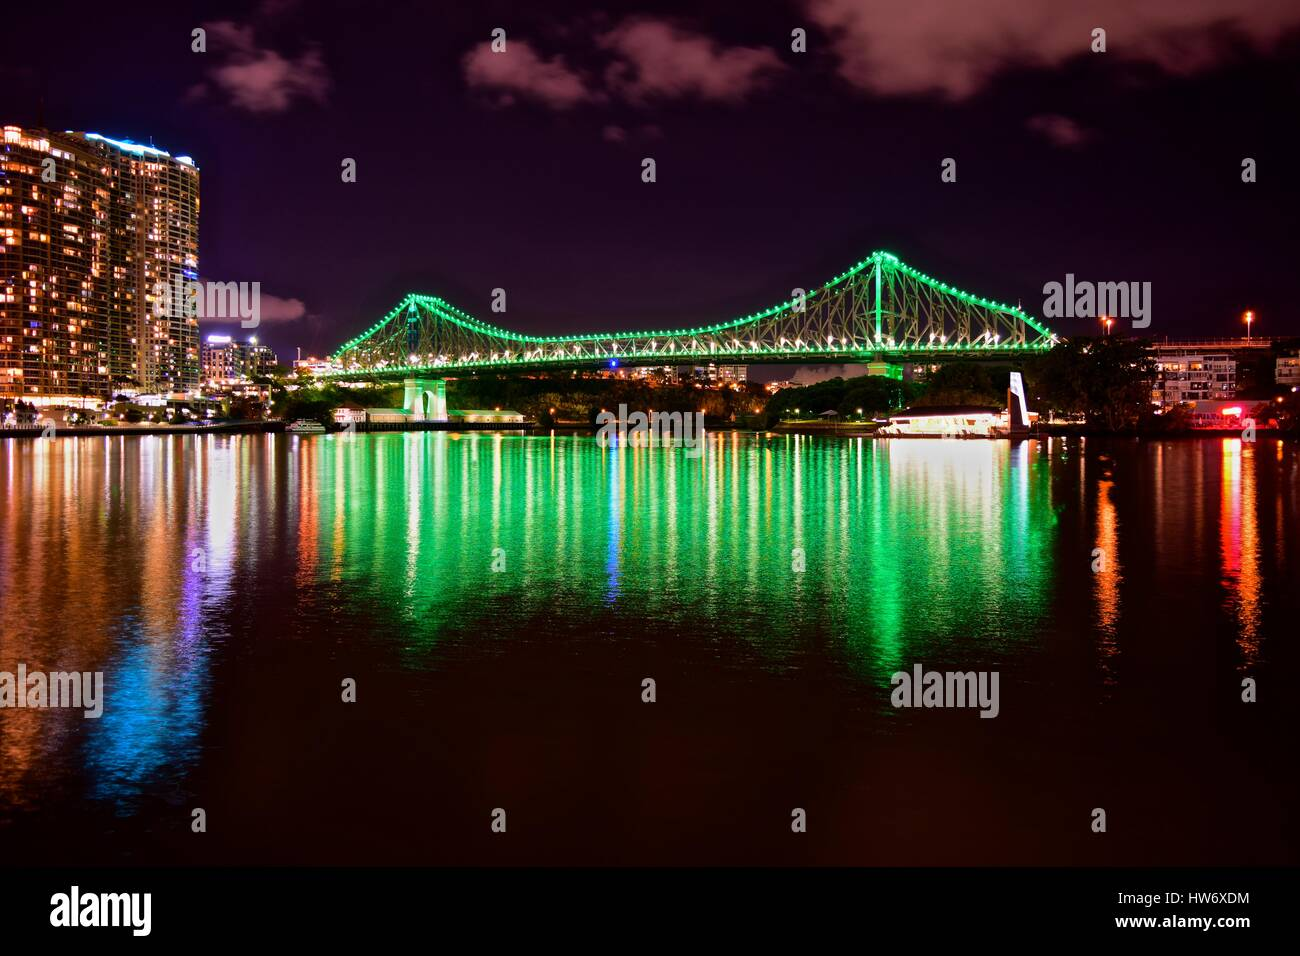 View of Story Bridge at night from across the Brisbane River. Photo captured using a long exposure. capturing the - Stock Image